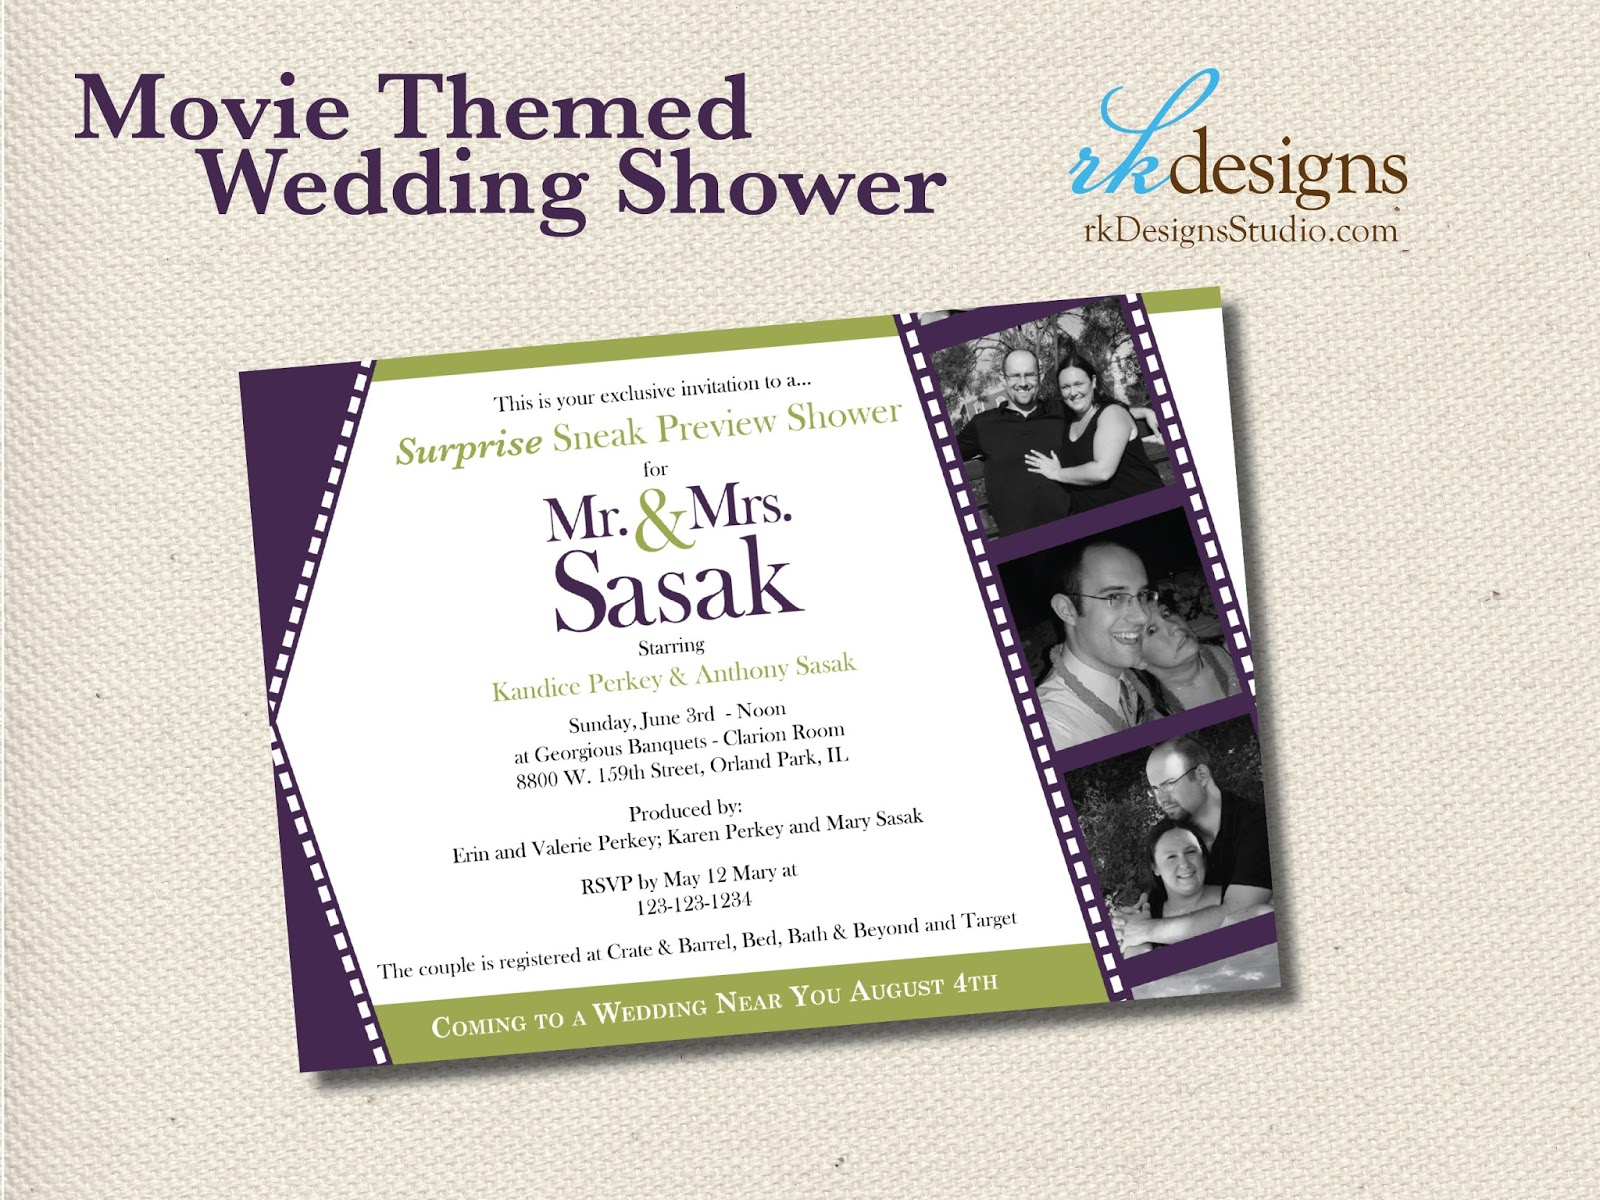 rkDesigns: Coming Attractions Bridal Shower